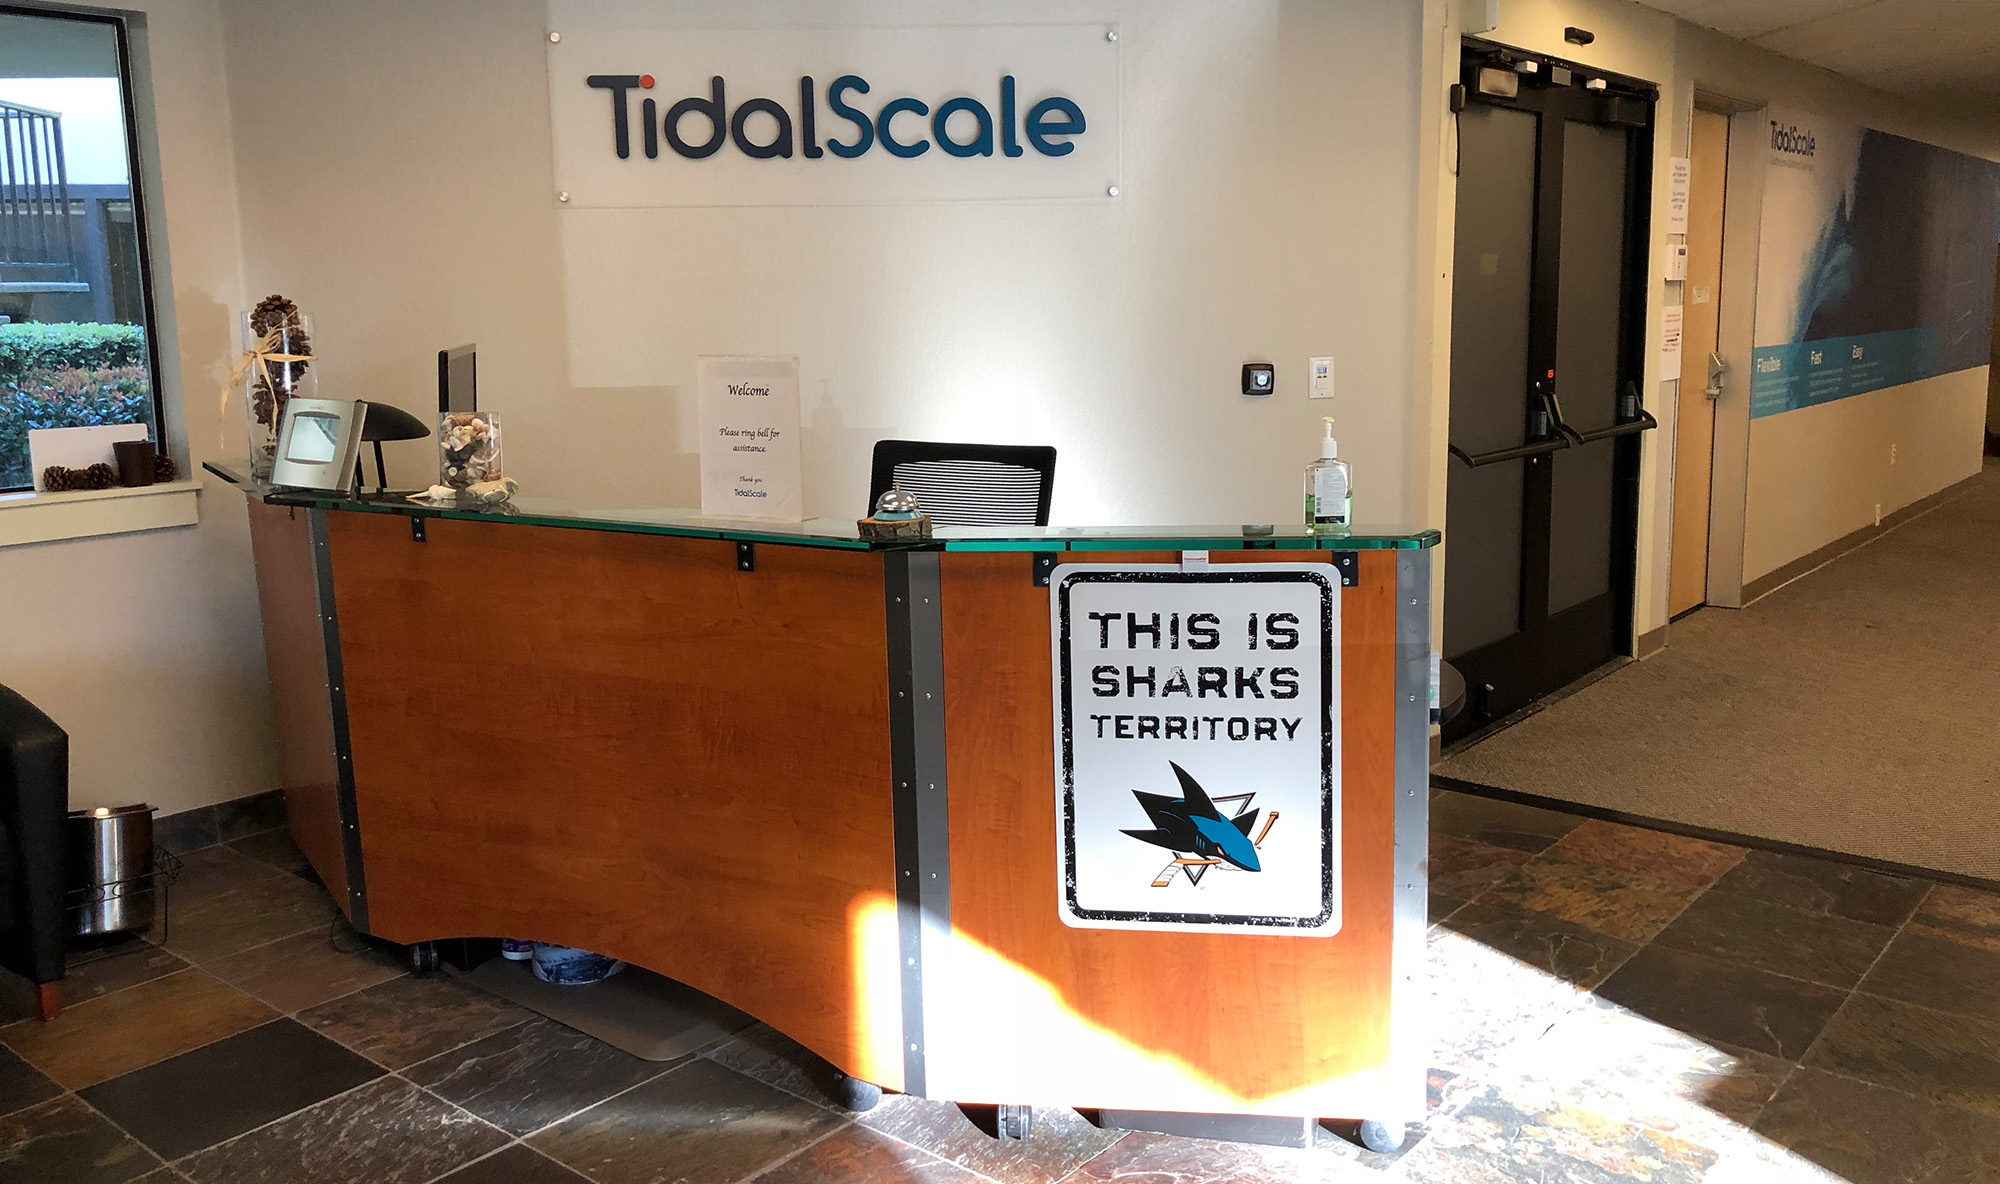 Infosys invests additional $1.5 million in TidalScale